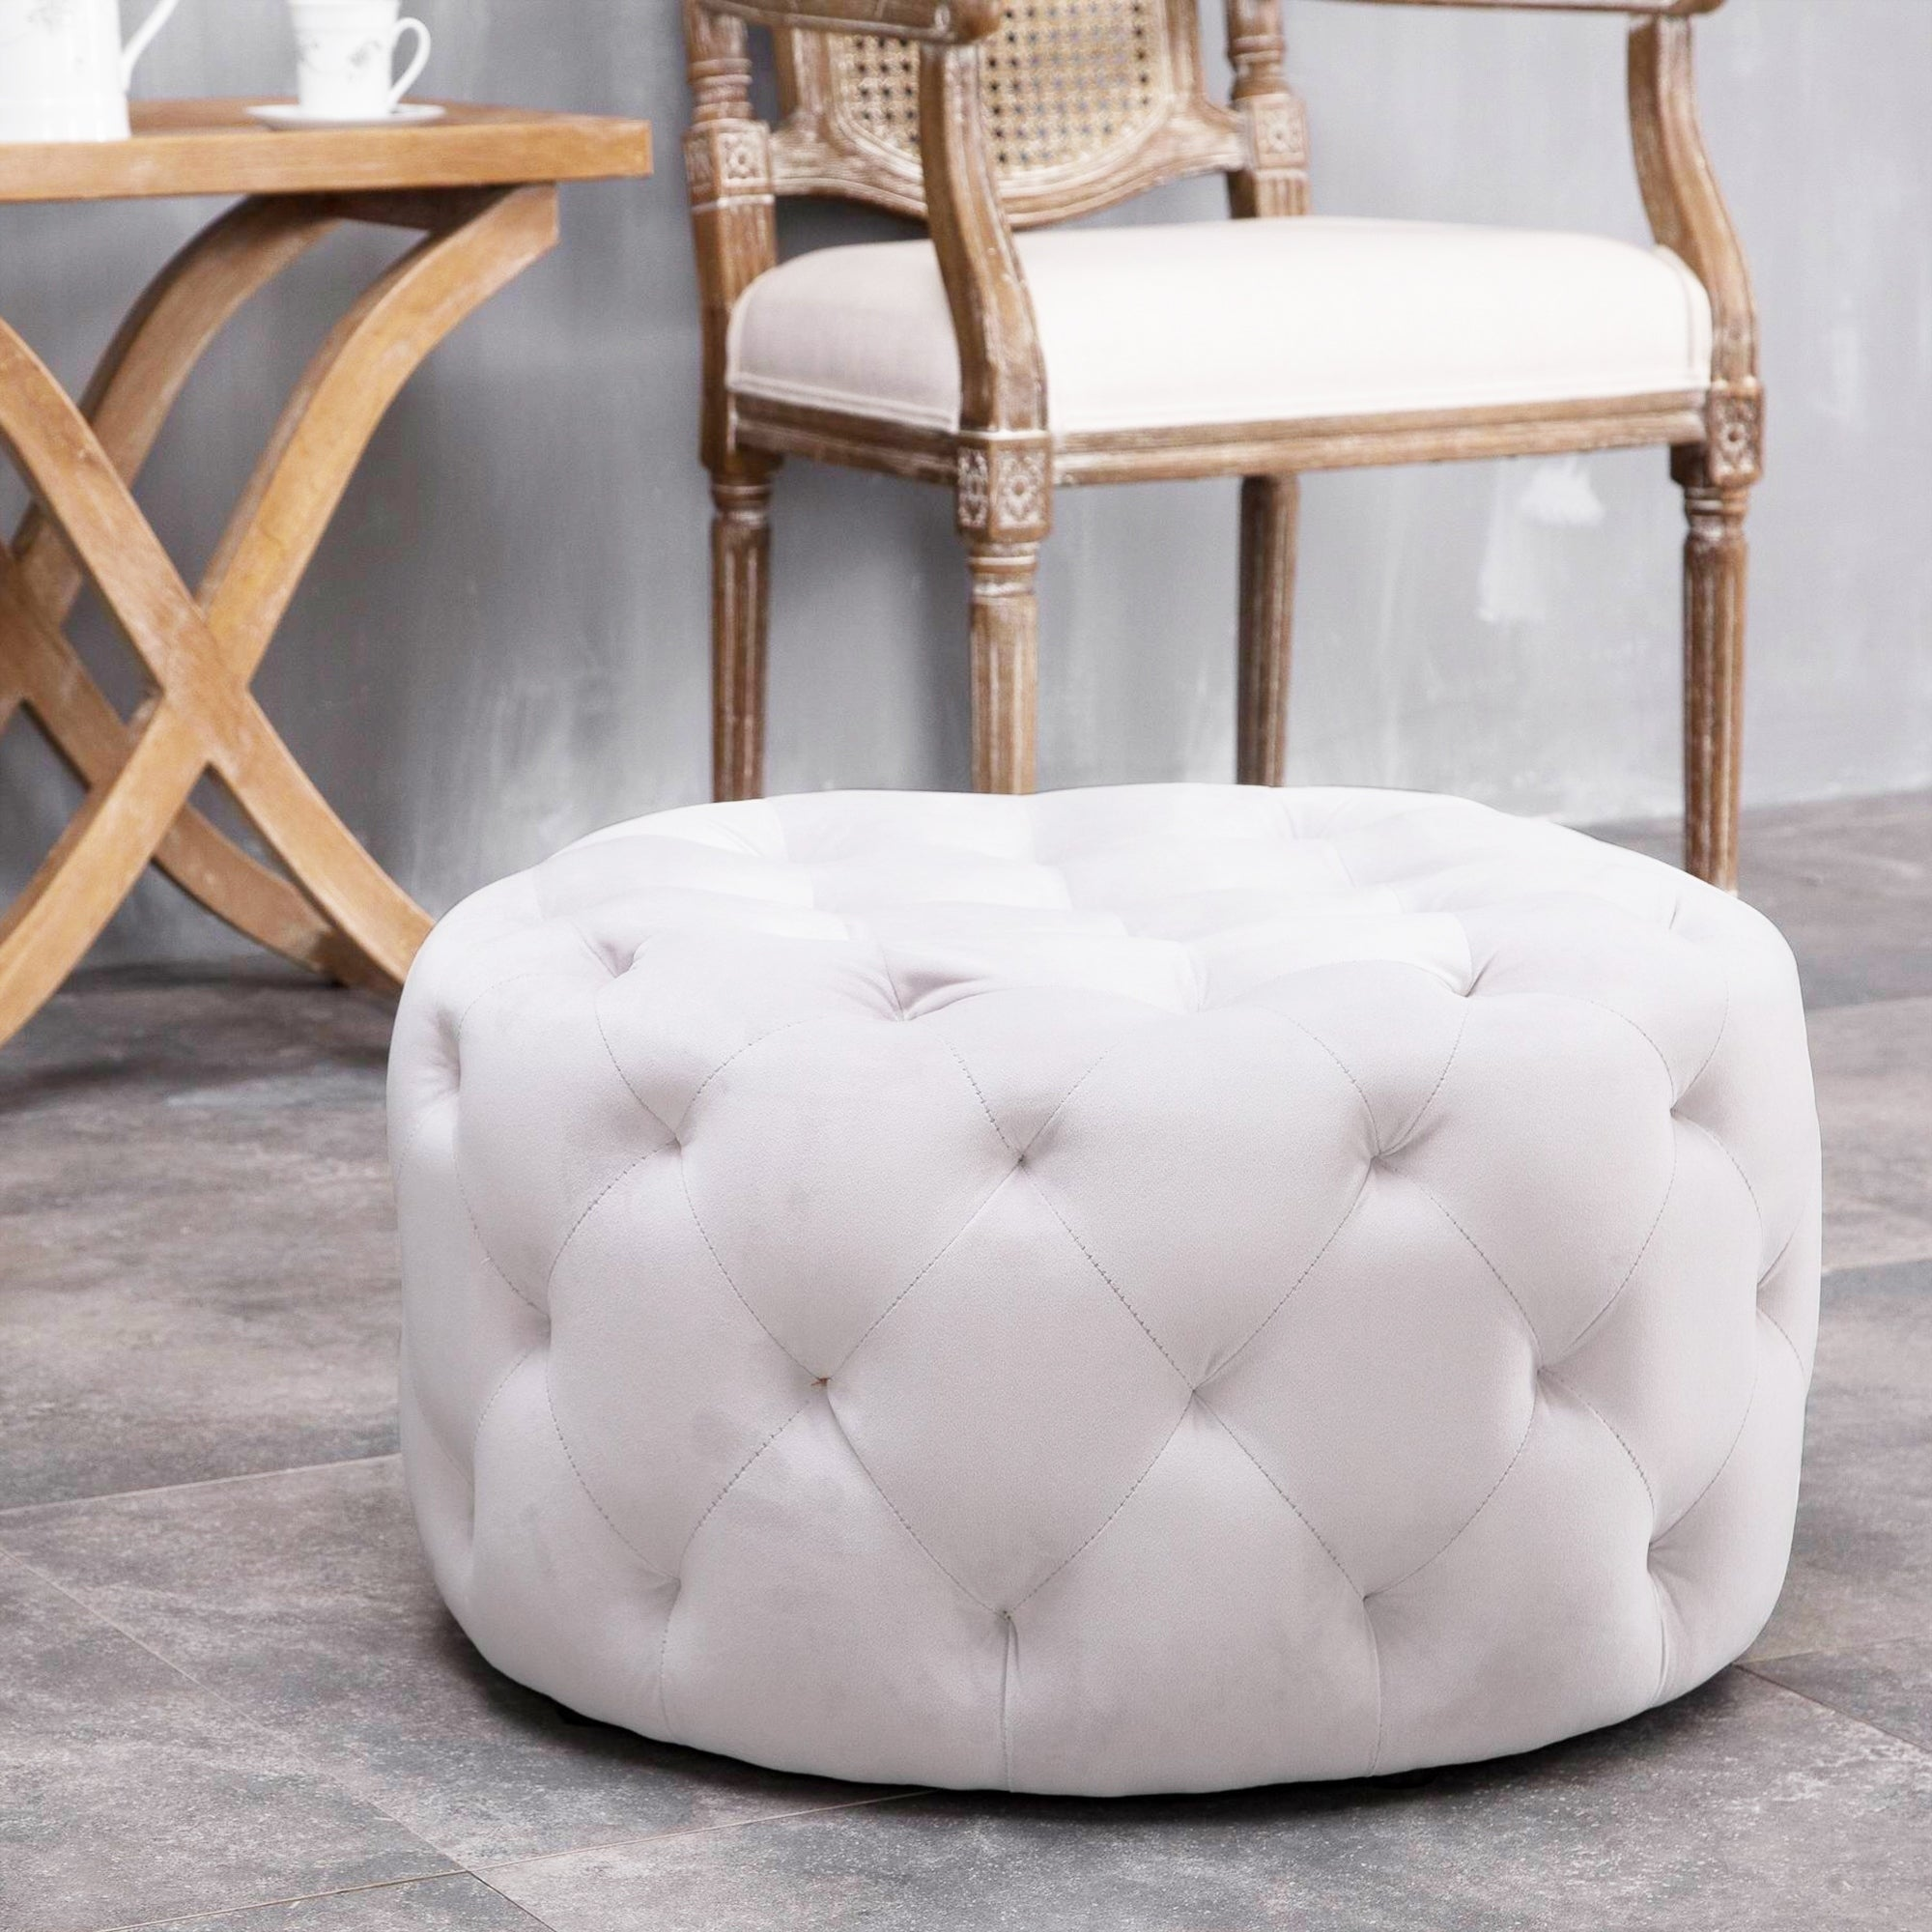 Warehouse Of Tiffany Meerna 24 Inch Round Tufted Padded Ottoman Optional Colors On Sale Overstock 16928275 Slate Grey